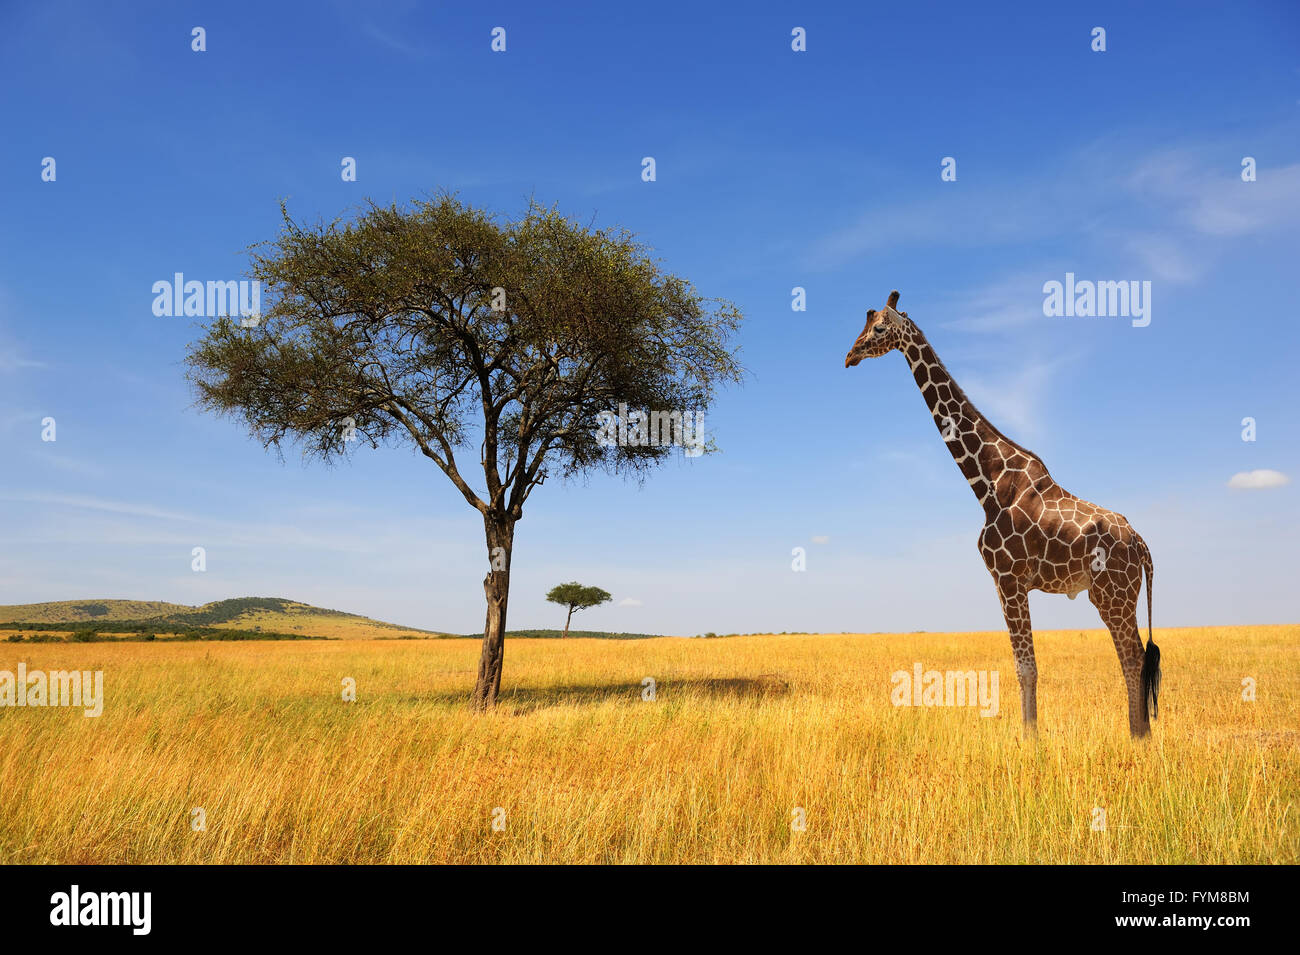 Beautiful landscape with tree and giraffe in Africa - Stock Image